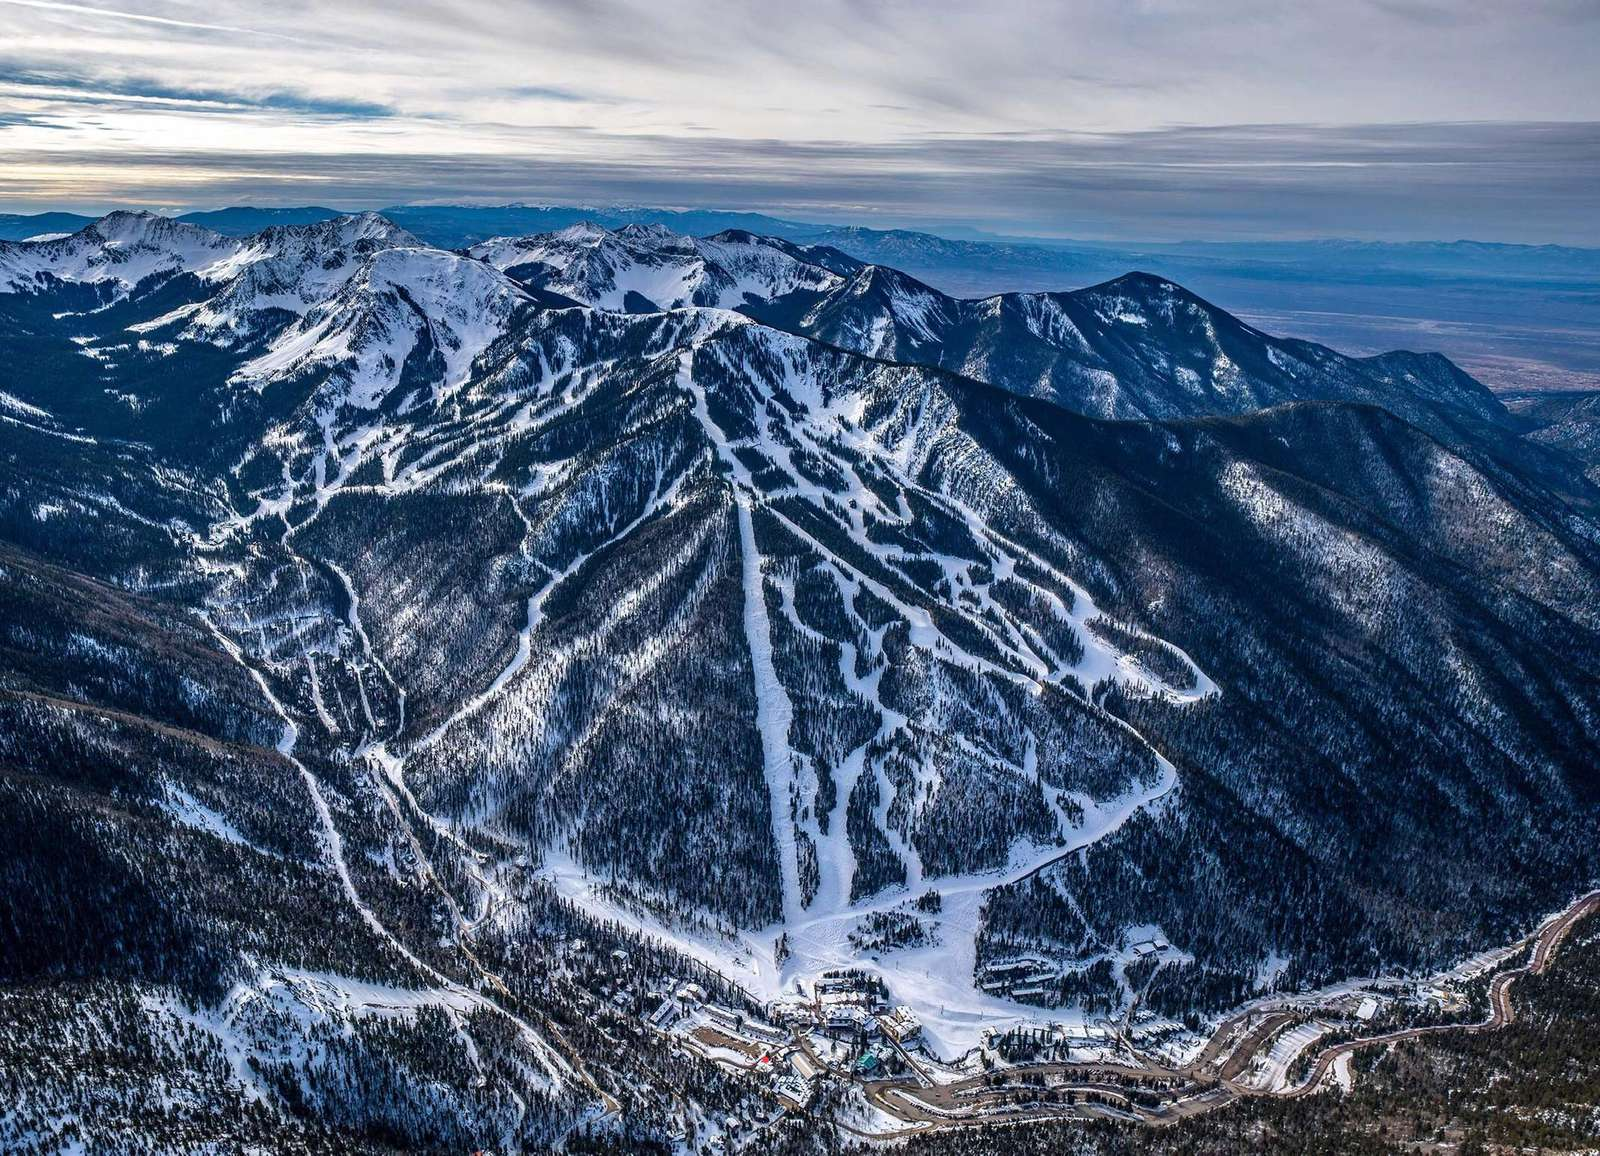 Taos Ski Valley Areal View